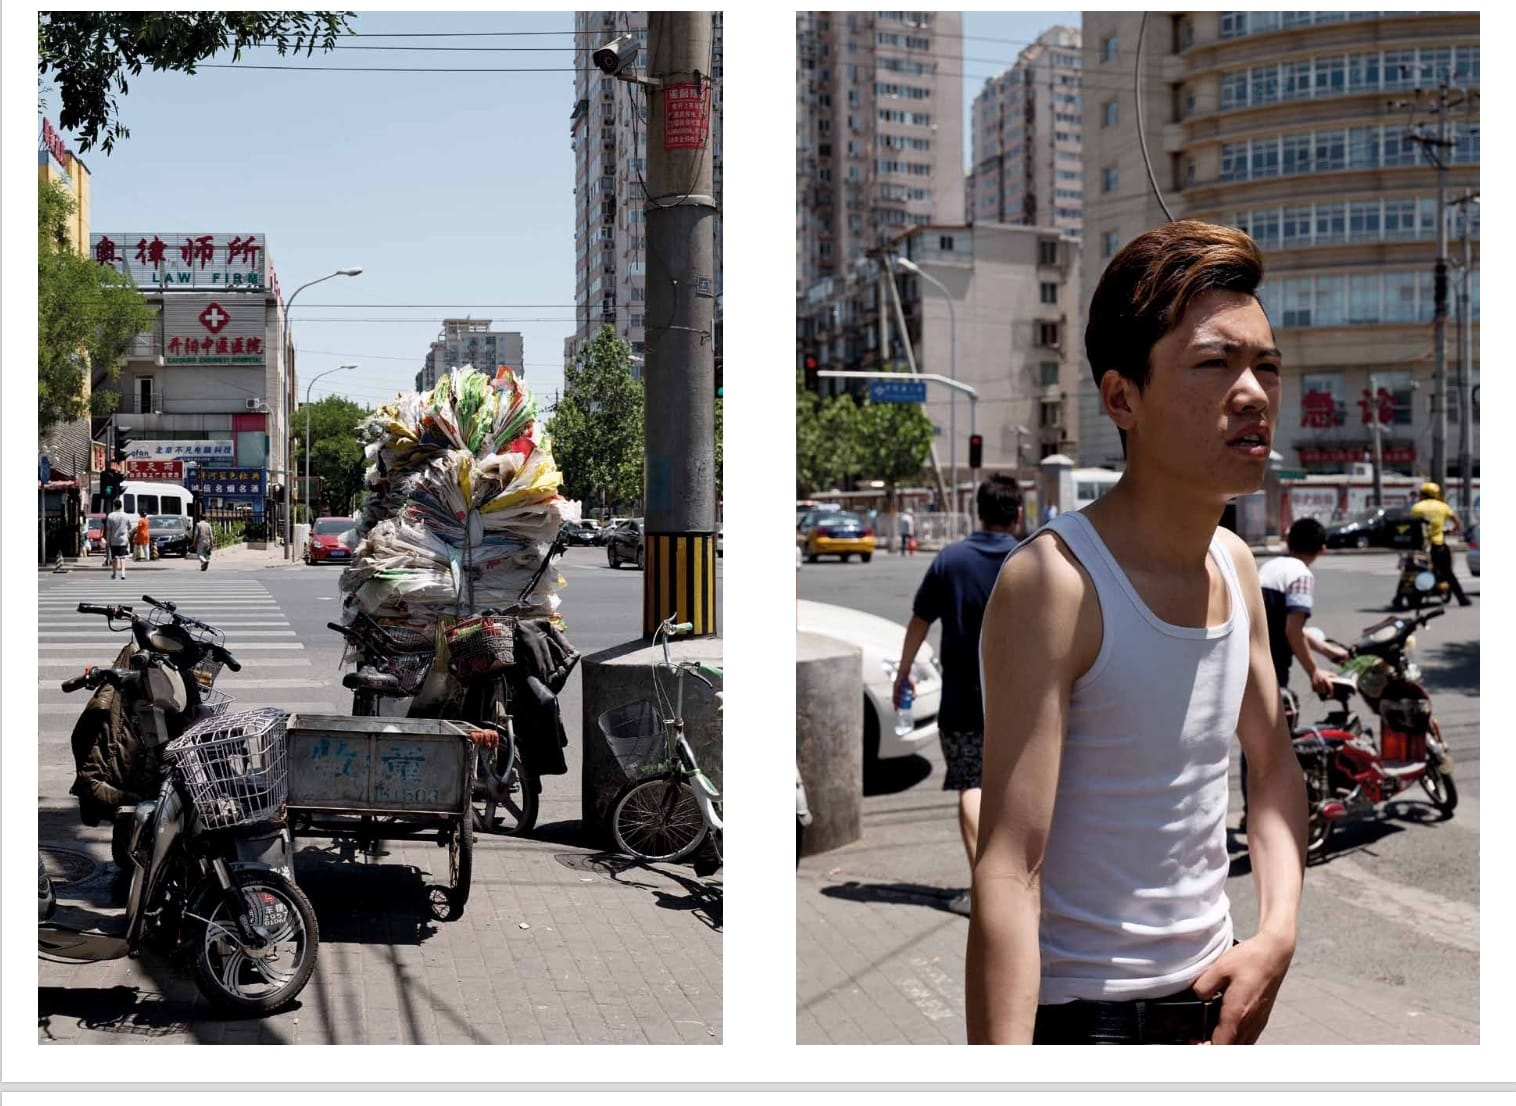 Dutch Design! BEST PHOTOBOOKS Renowned Experts selection 2017 Kassel #FotobookFestival EDIT BEIJING by #GuyTillim design #SybrenKuiper aka SYB Invitation to join the #Kassel #Photobook #Award 2017 – The book is only made of portraits in the street, and some pages offer triad views. What is your purpose in this photobook ? Hard to say what the purpose of the book was except, as you can see, to make street photographs. The location could have been Rome, or Moscow say, and I would have been just as happy… #photobook « #EditBeijing #LimitedEdition 500 – #Signed C Print €75 #editionsbessard #photography #china #SouthAfrica #ArtistEdition design by the #Dutch Artistic Director #SYB Few copies available on our website… #photography #Photographer #photographie #ArtOfPerfection #Art #contemporaryart #collector #collectors #Beijing #DutchDesign